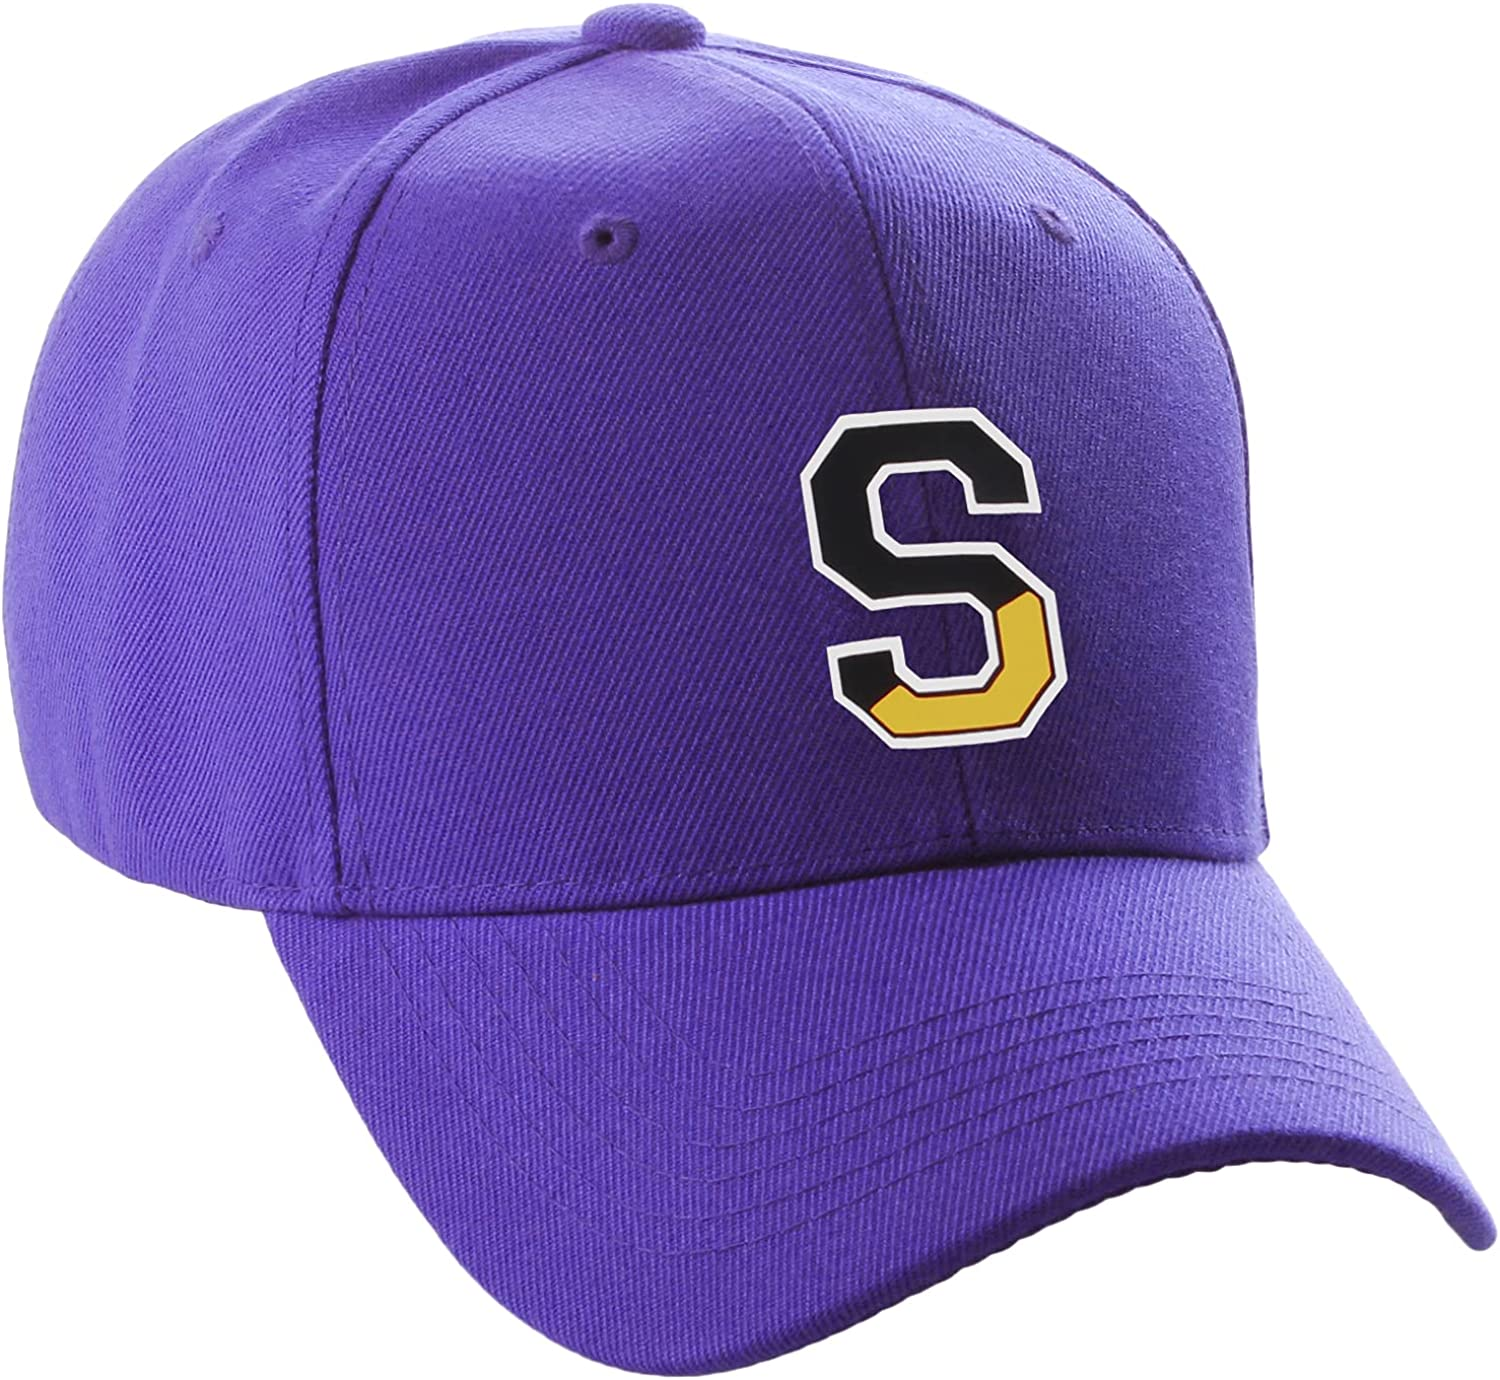 Daxton Two Tone Initial Letters Numbers Structured Baseball Hat